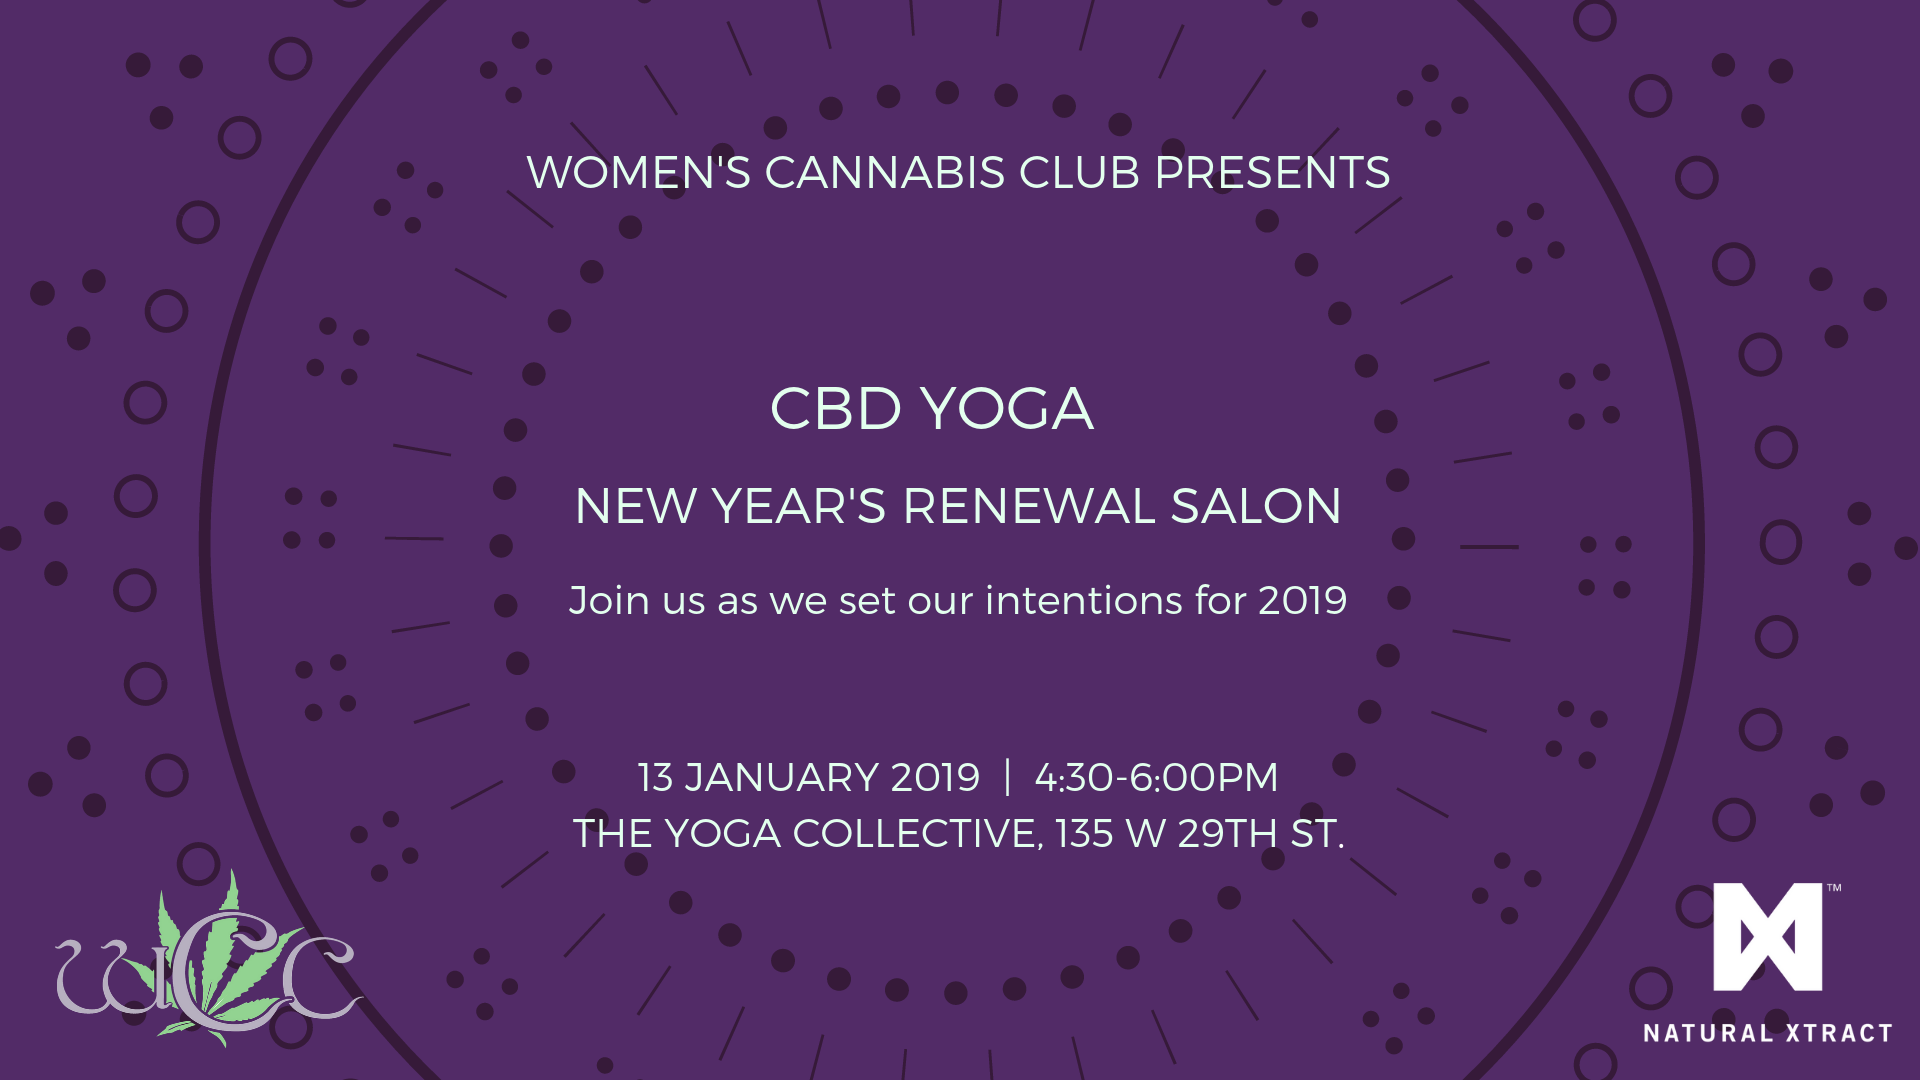 New Year's Renewal, Restorative CBD, Yoga Salon